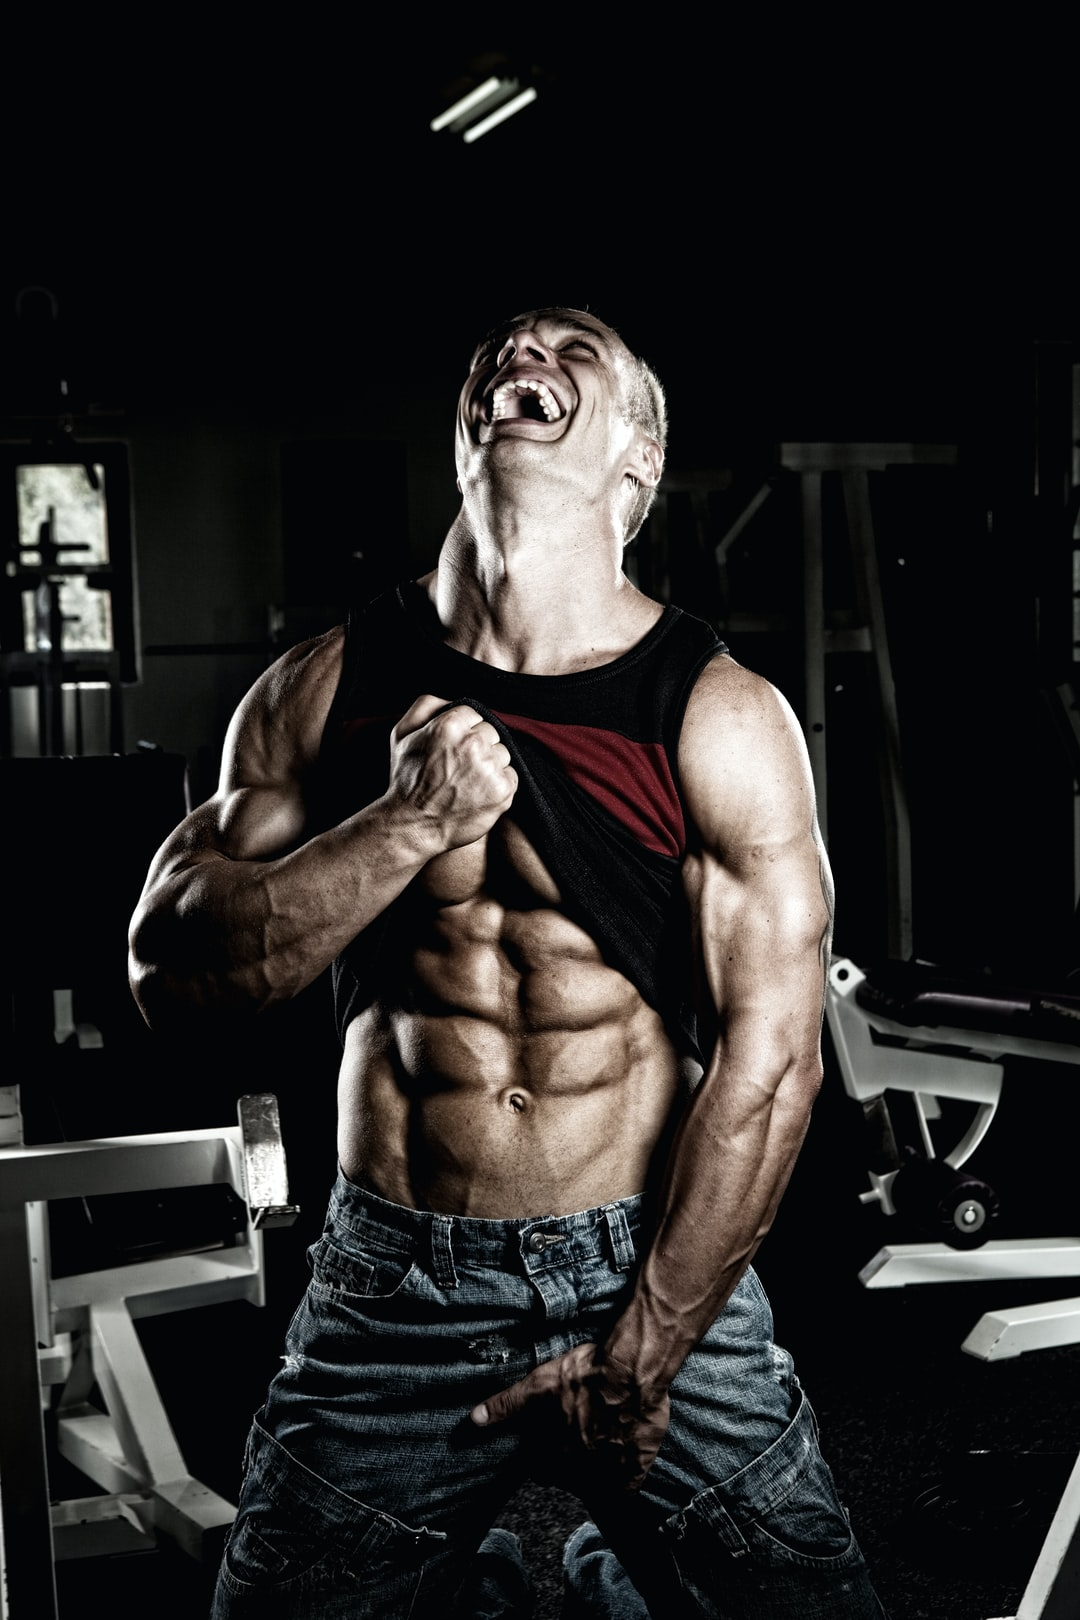 Handsome young man with killer abs